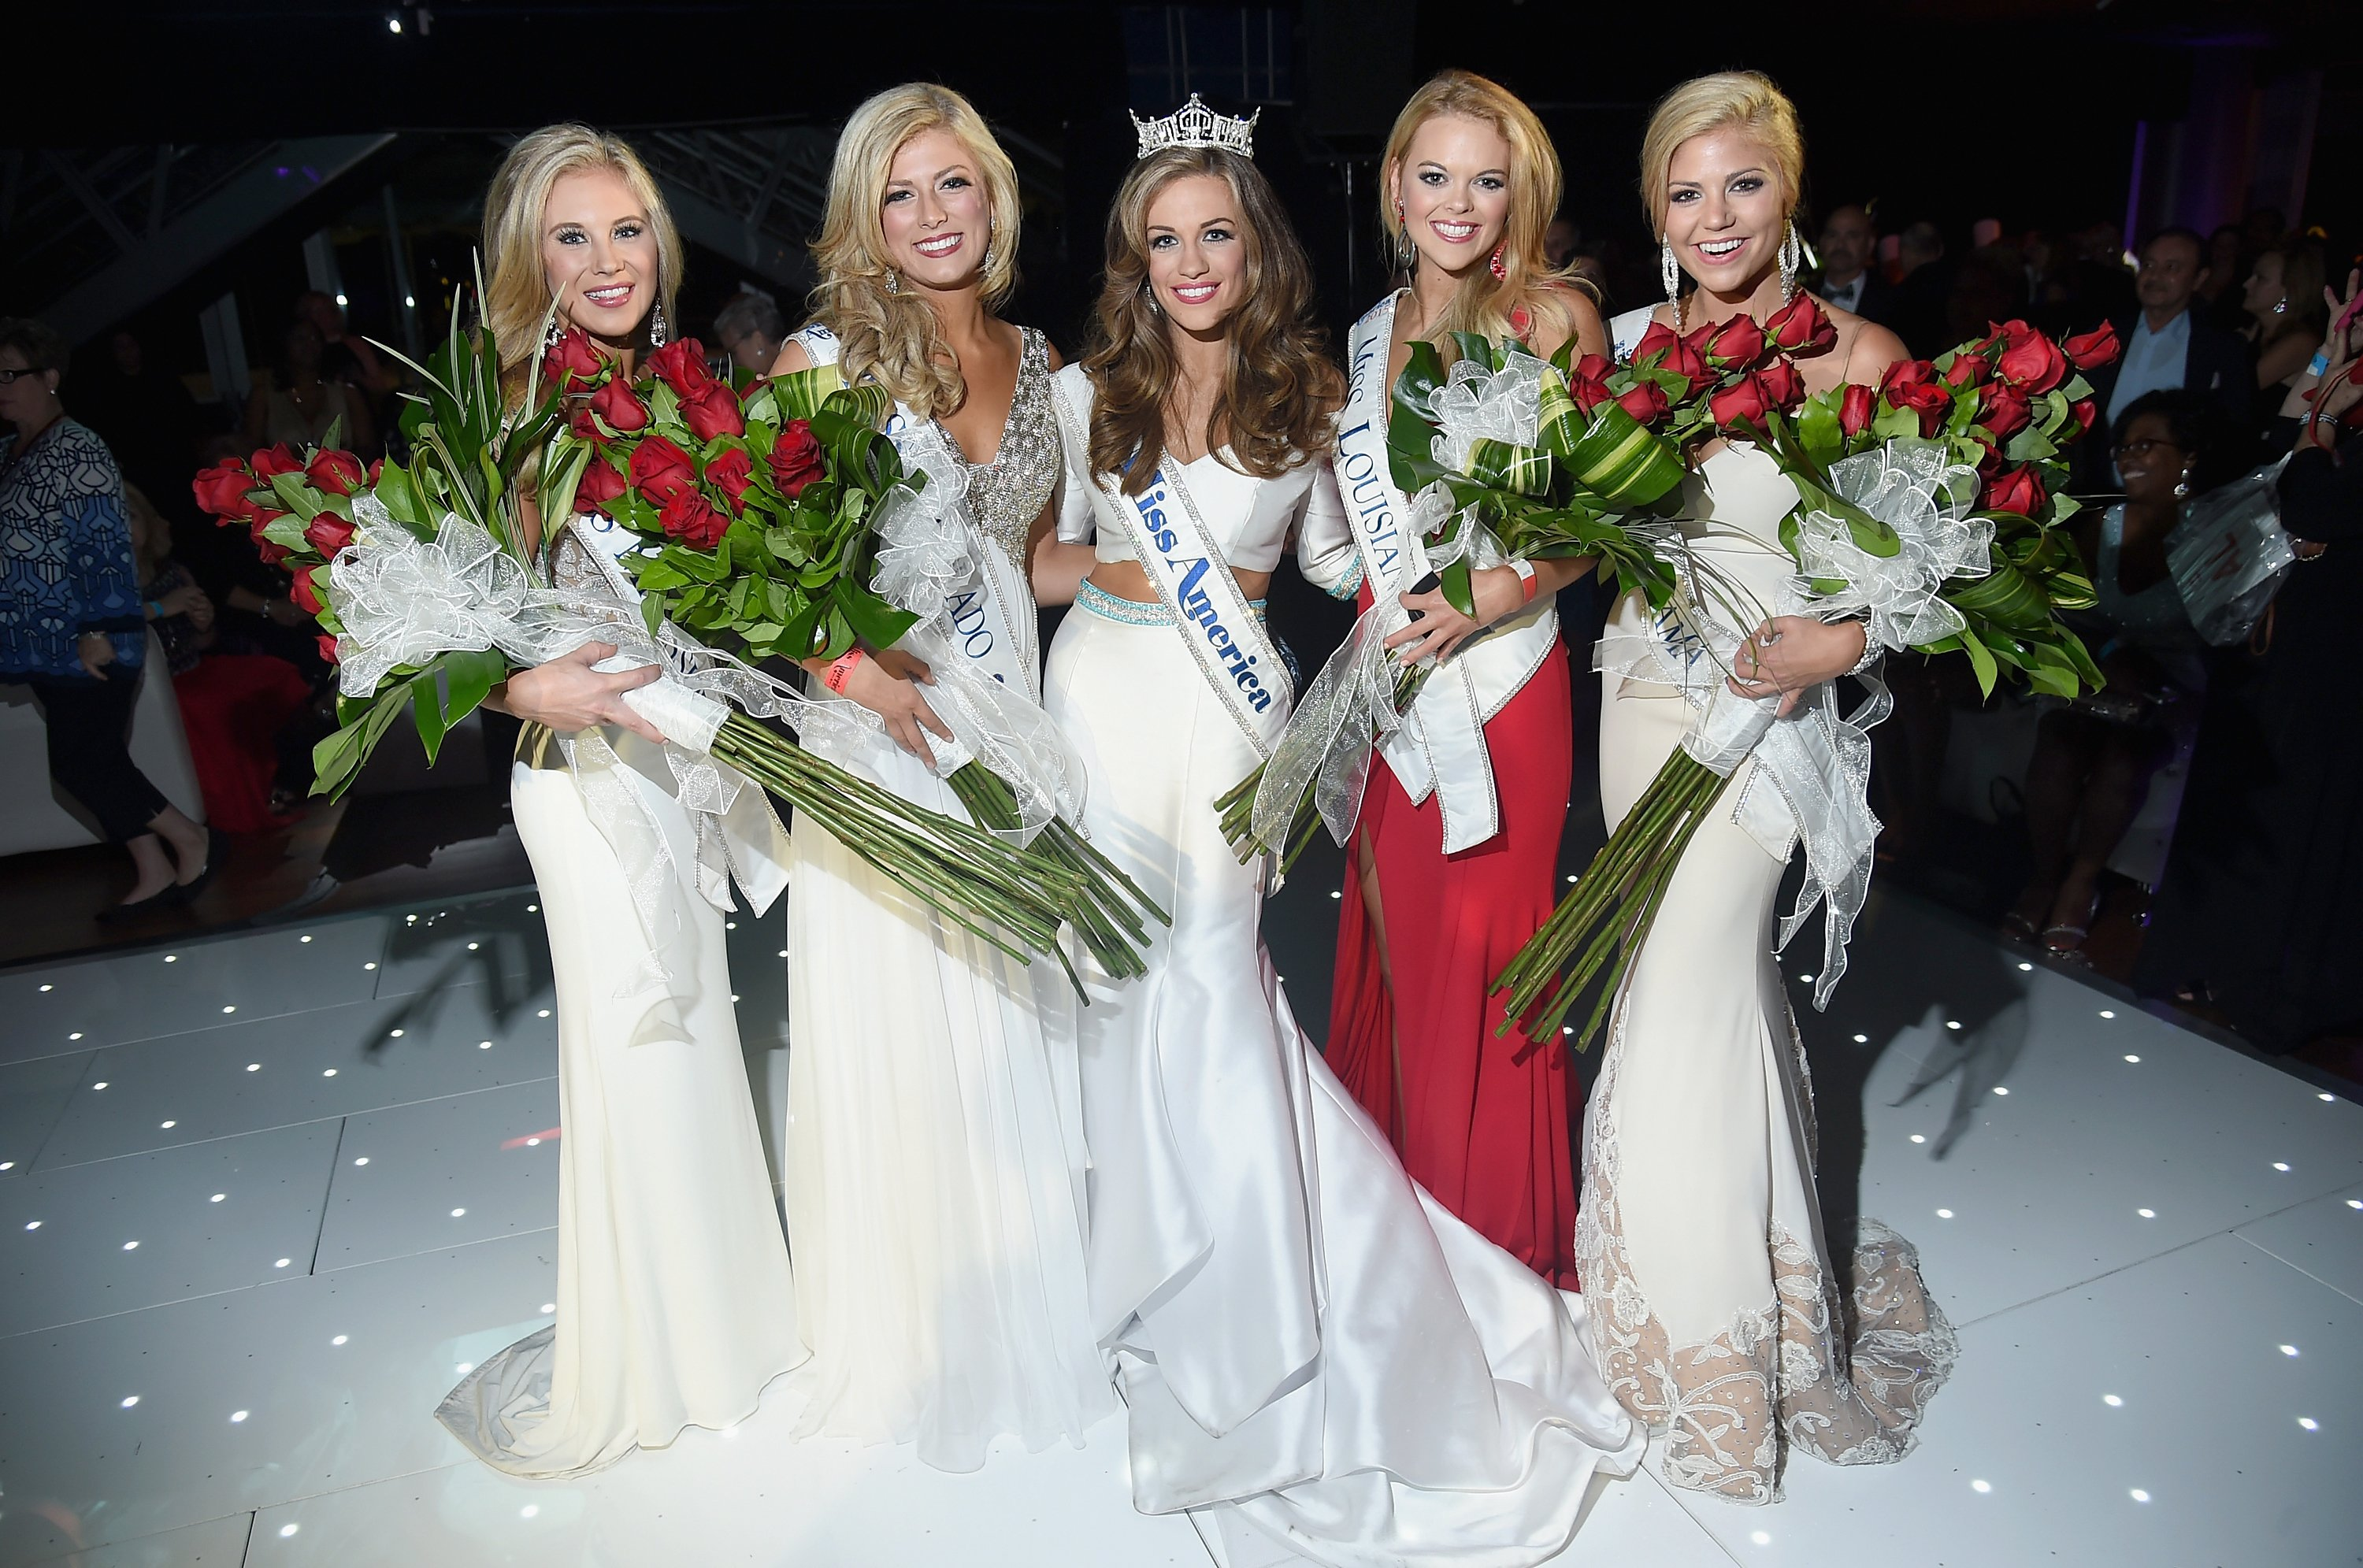 Miss Alabama, Meg McGuffin, Miss Louisiana, April Nelson, Miss America 2016, Betty Cantrell, Miss Mississippi, Hannah Roberts, Miss Colorado, Kelley Johnson attend The 2016 Official Miss America After-Party at on September 13, 2015 in Atlantic City